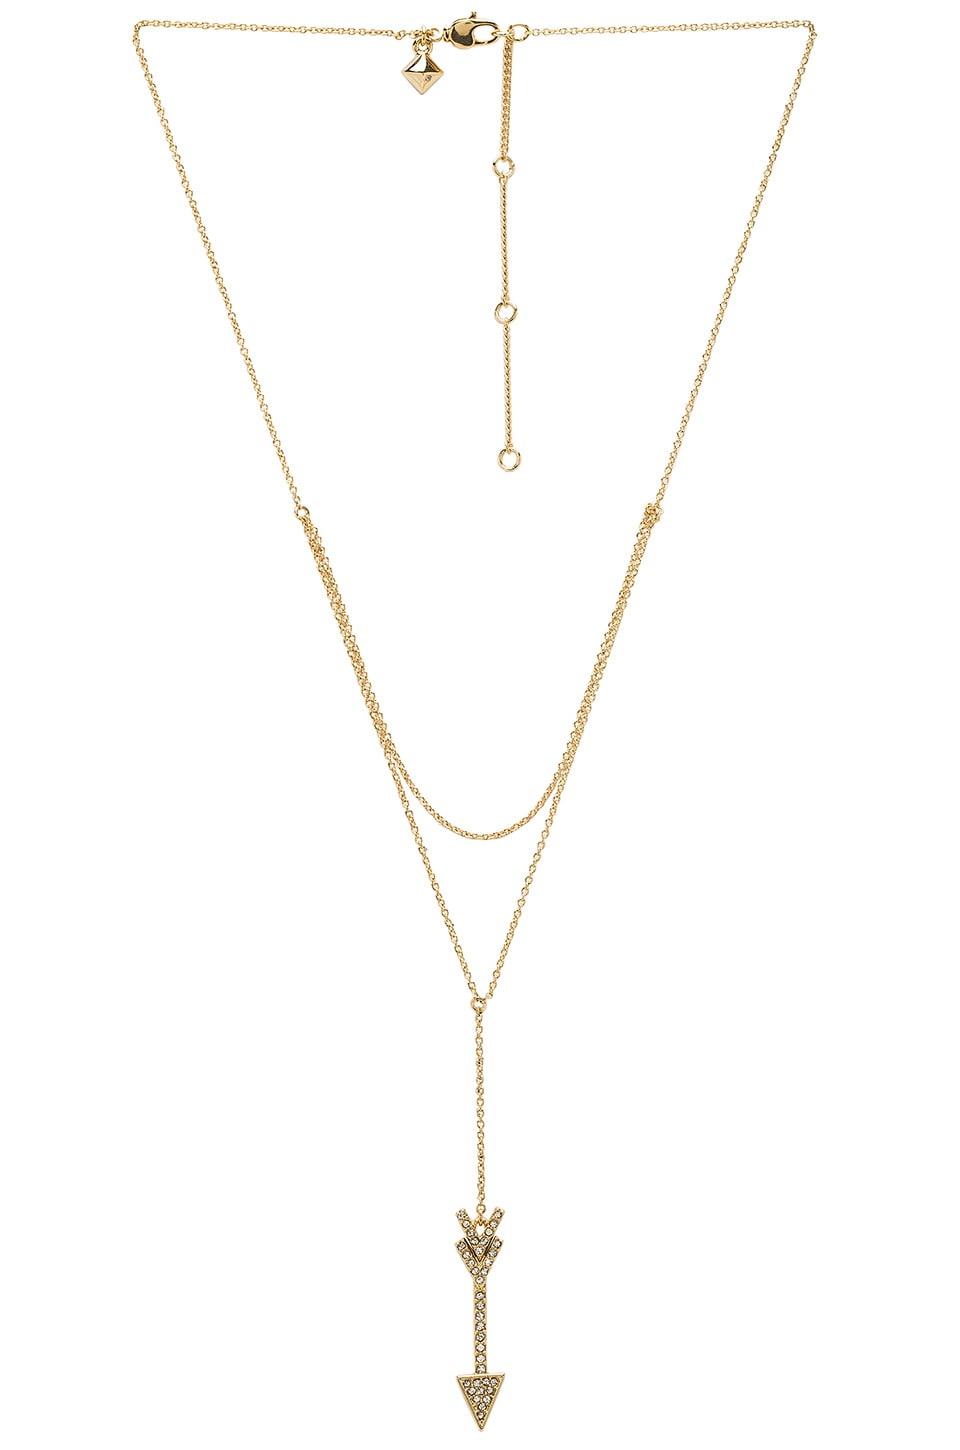 Rebecca Minkoff Arrow Layered Y Necklace in Gold & Crystal